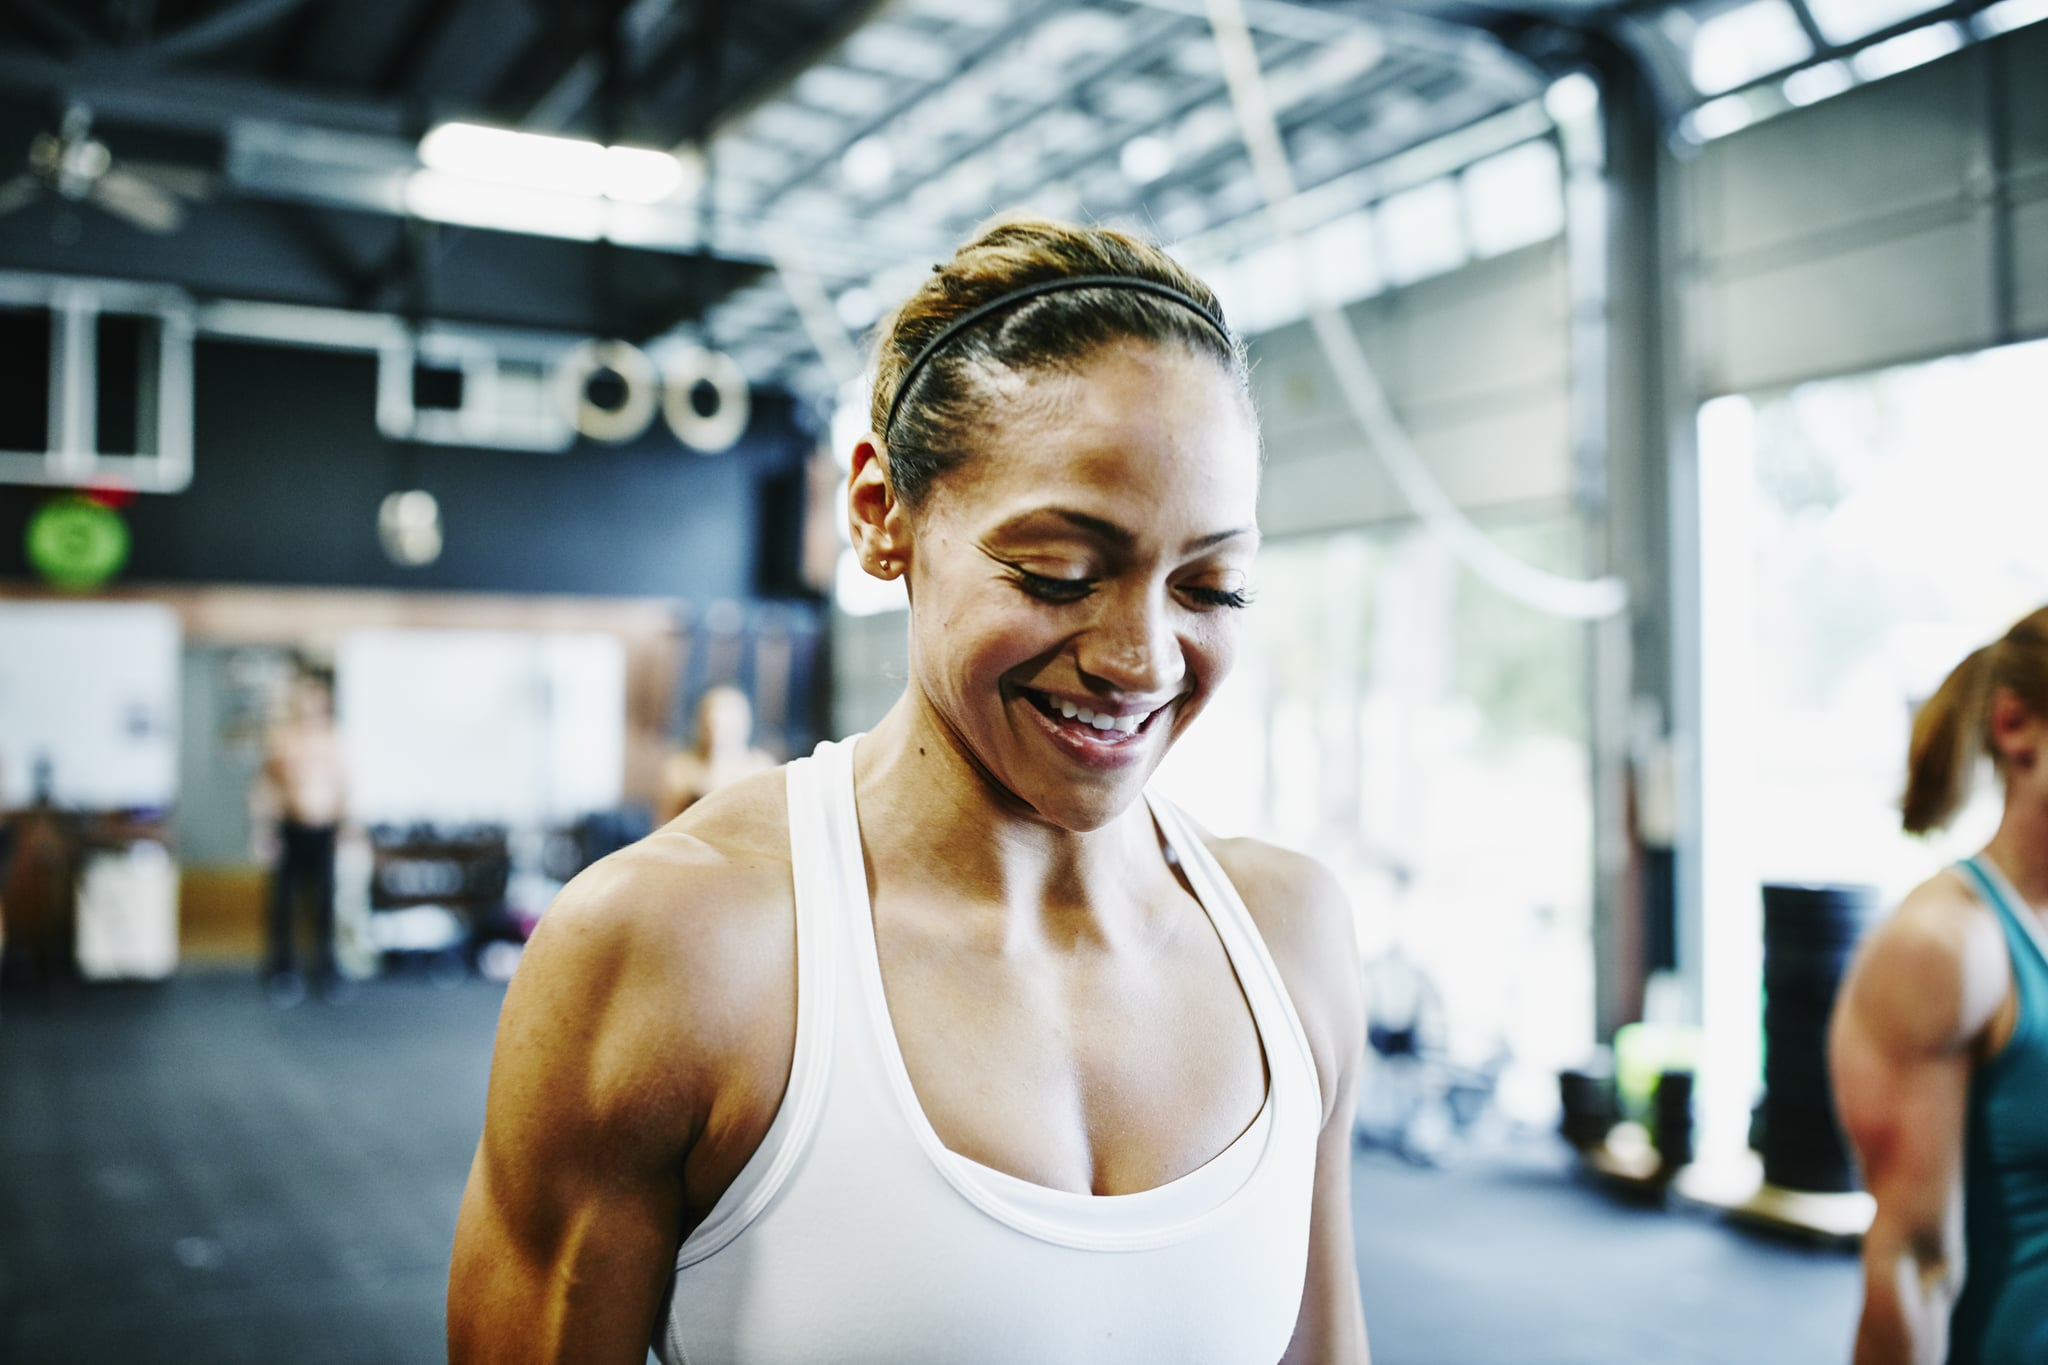 Smiling woman carrying kettlebells during workout in gym